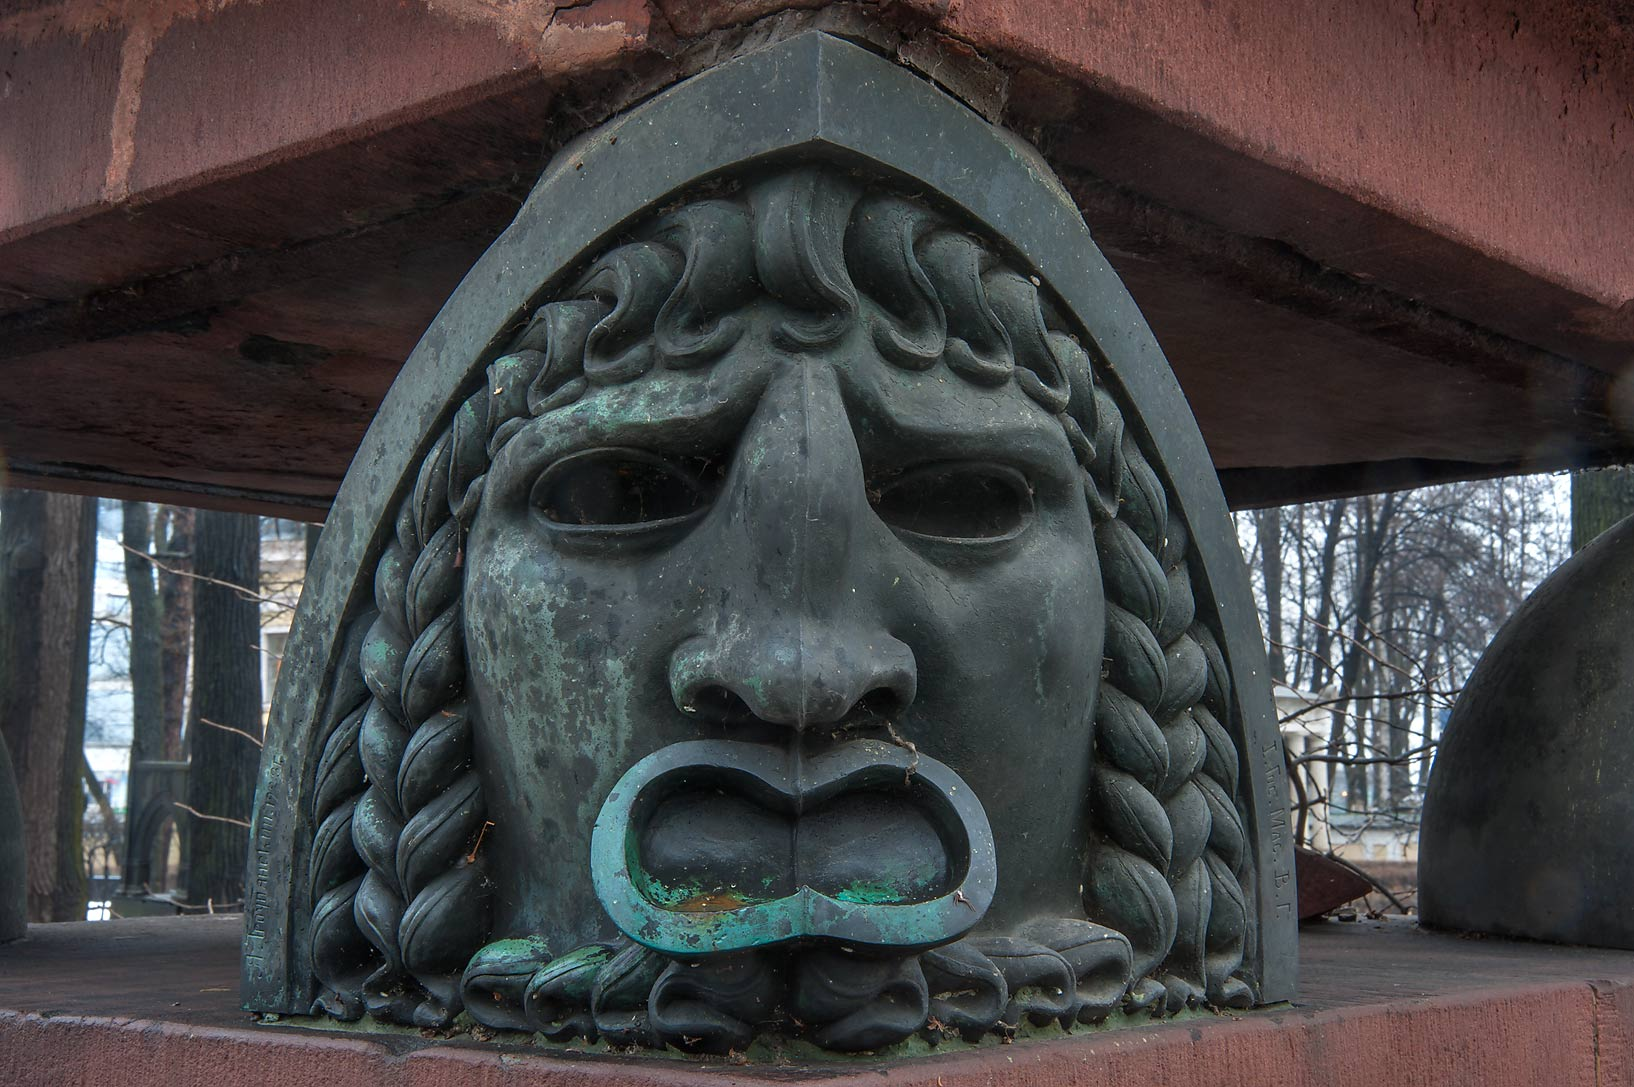 Bronze head supporting tombstone in Necropolis of...Cemetery). St.Petersburg, Russia